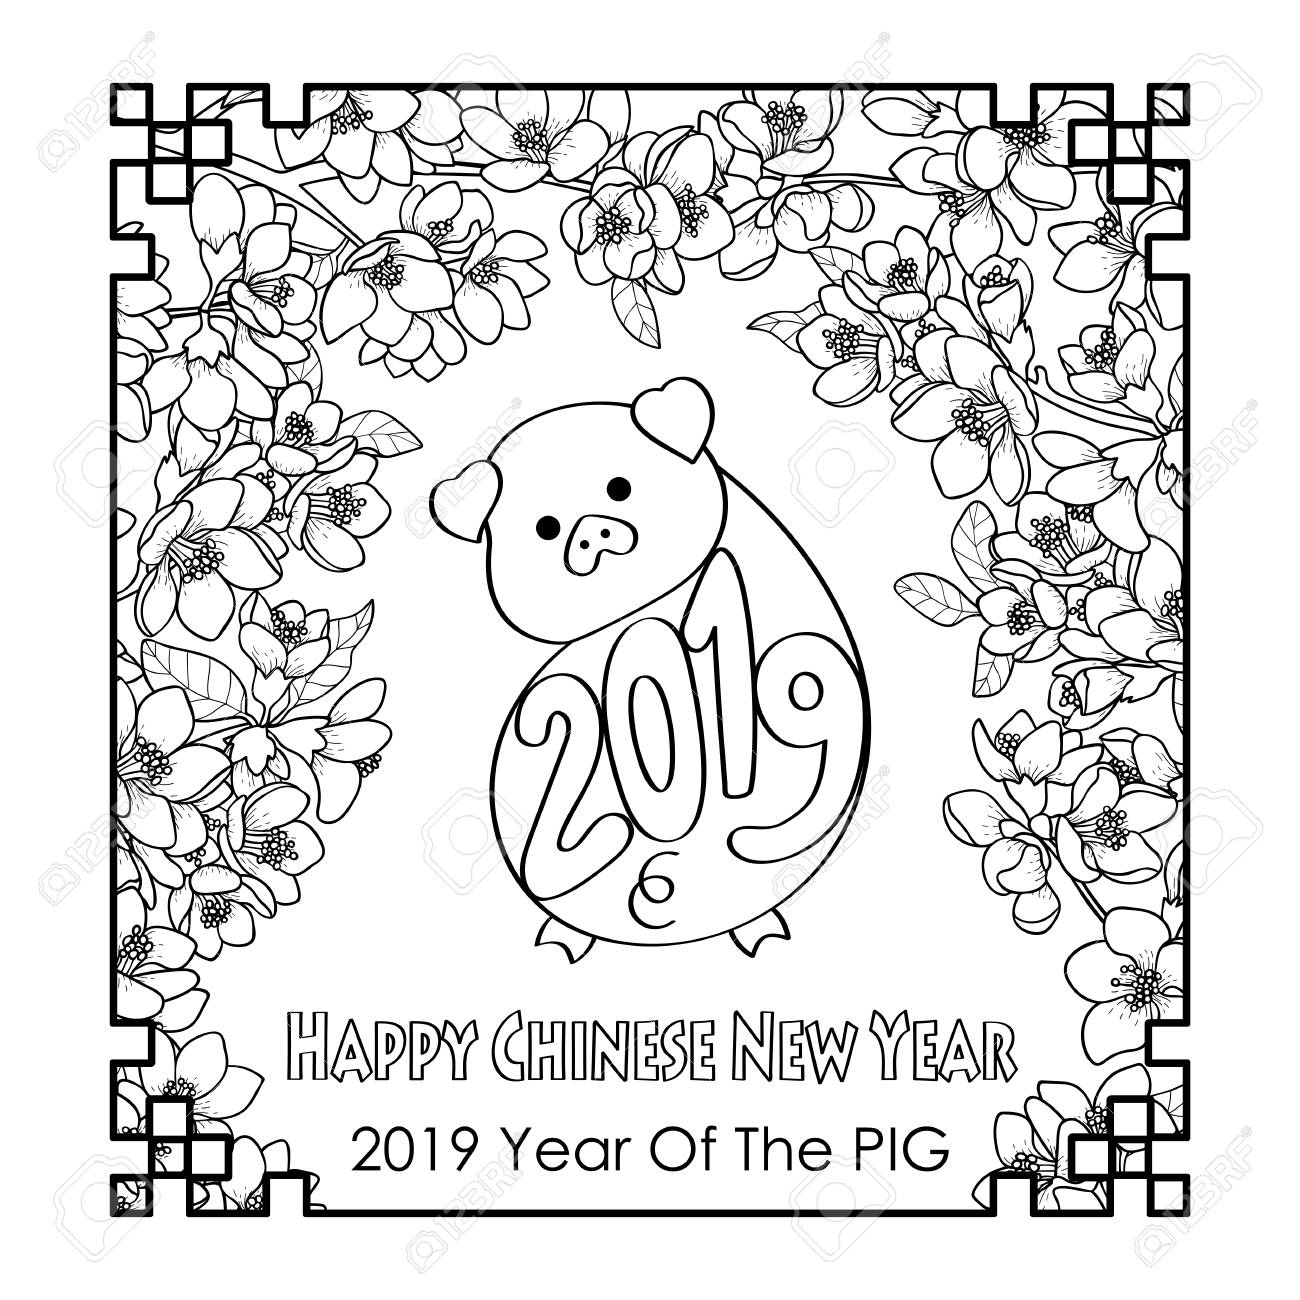 Happy Chinese New Year 2019 Card With Pig Royalty Free Cliparts